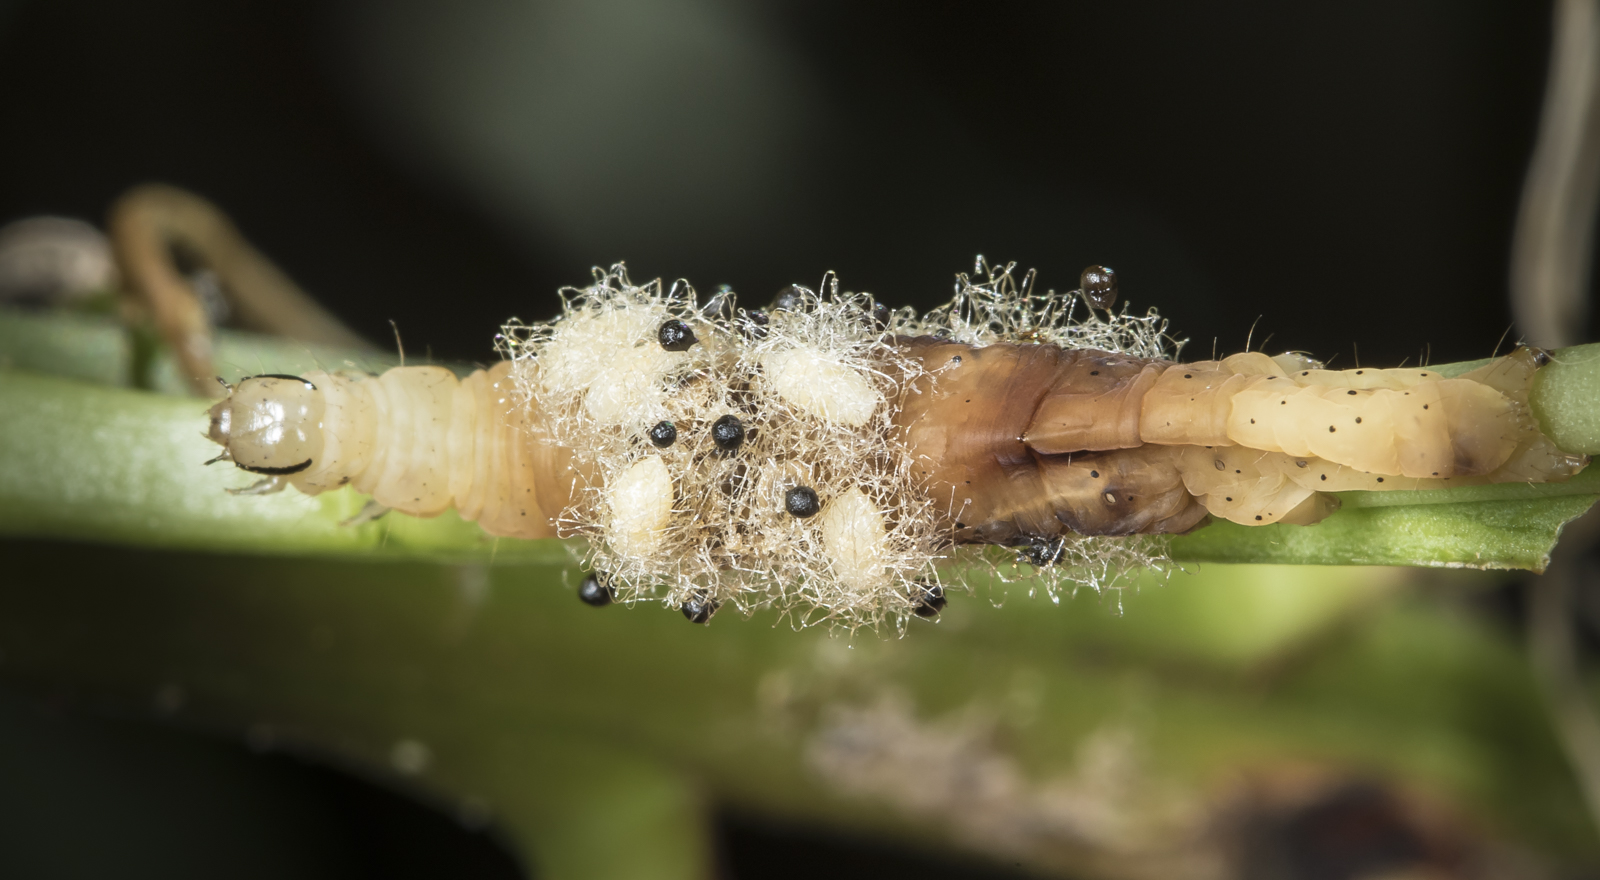 Caterpillar with Euplectrus pupae 1